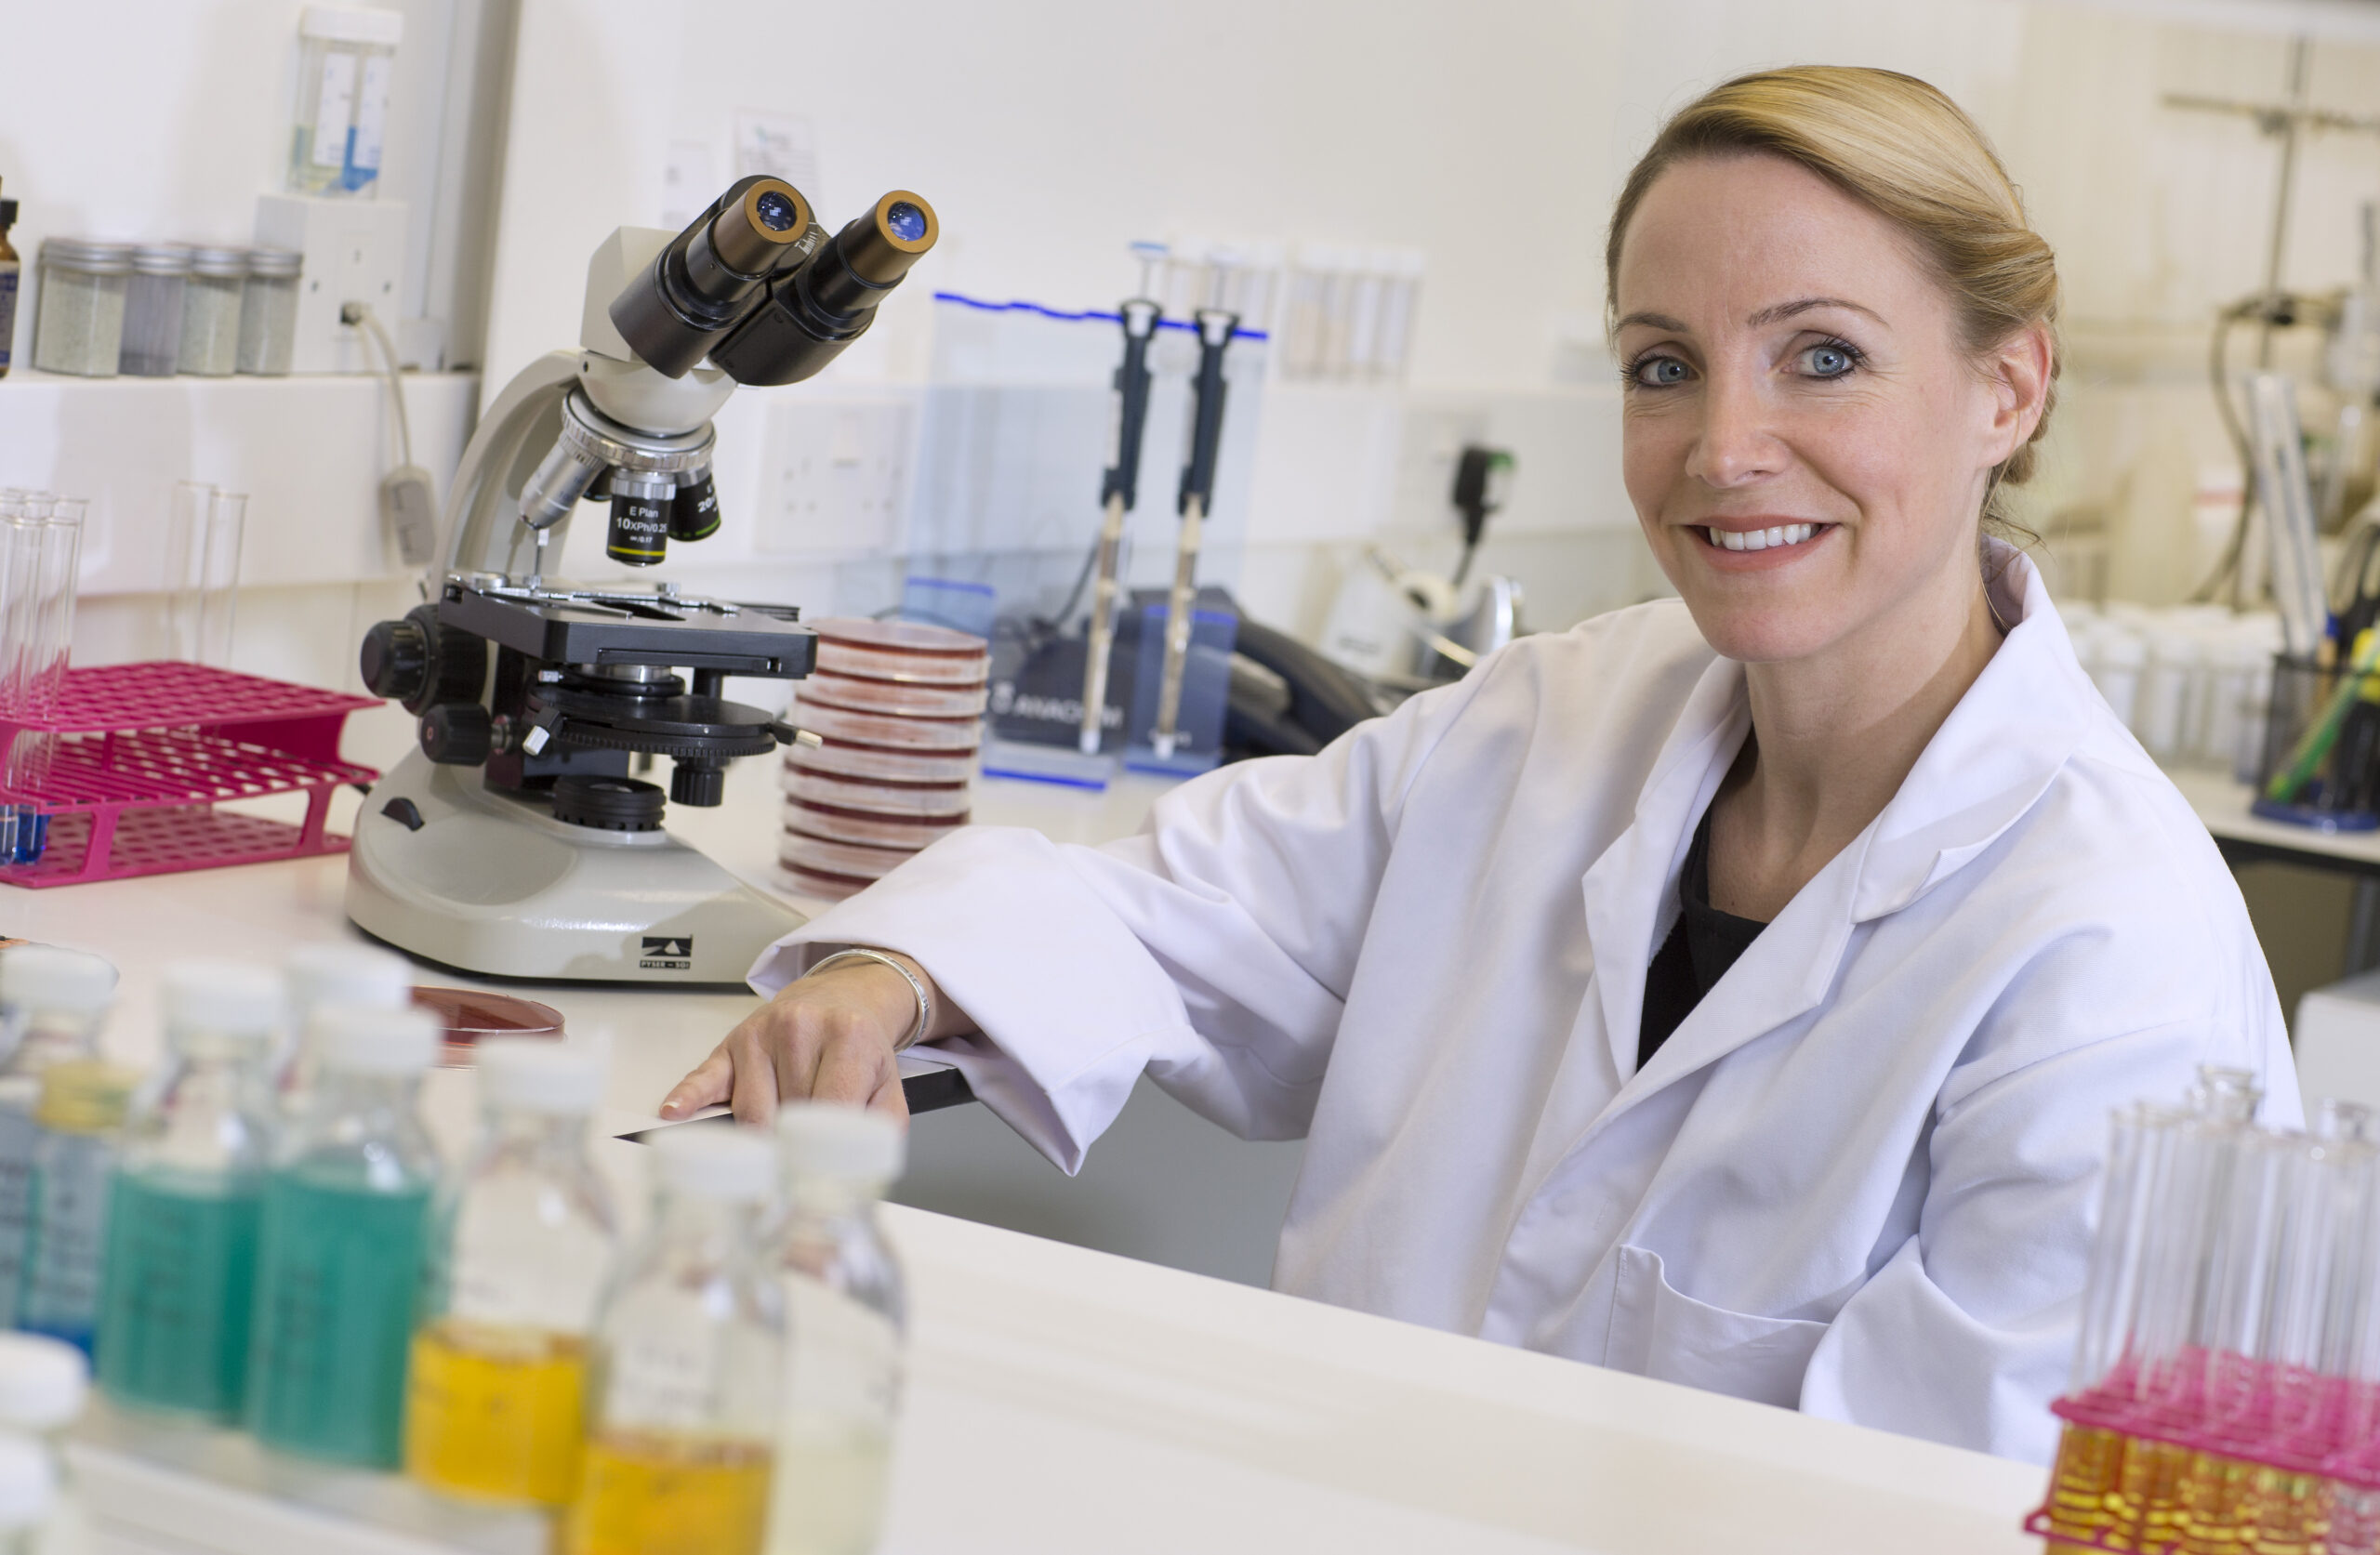 Cardiff's Genesis Biosciences selected for United Utilities Innovation Lab